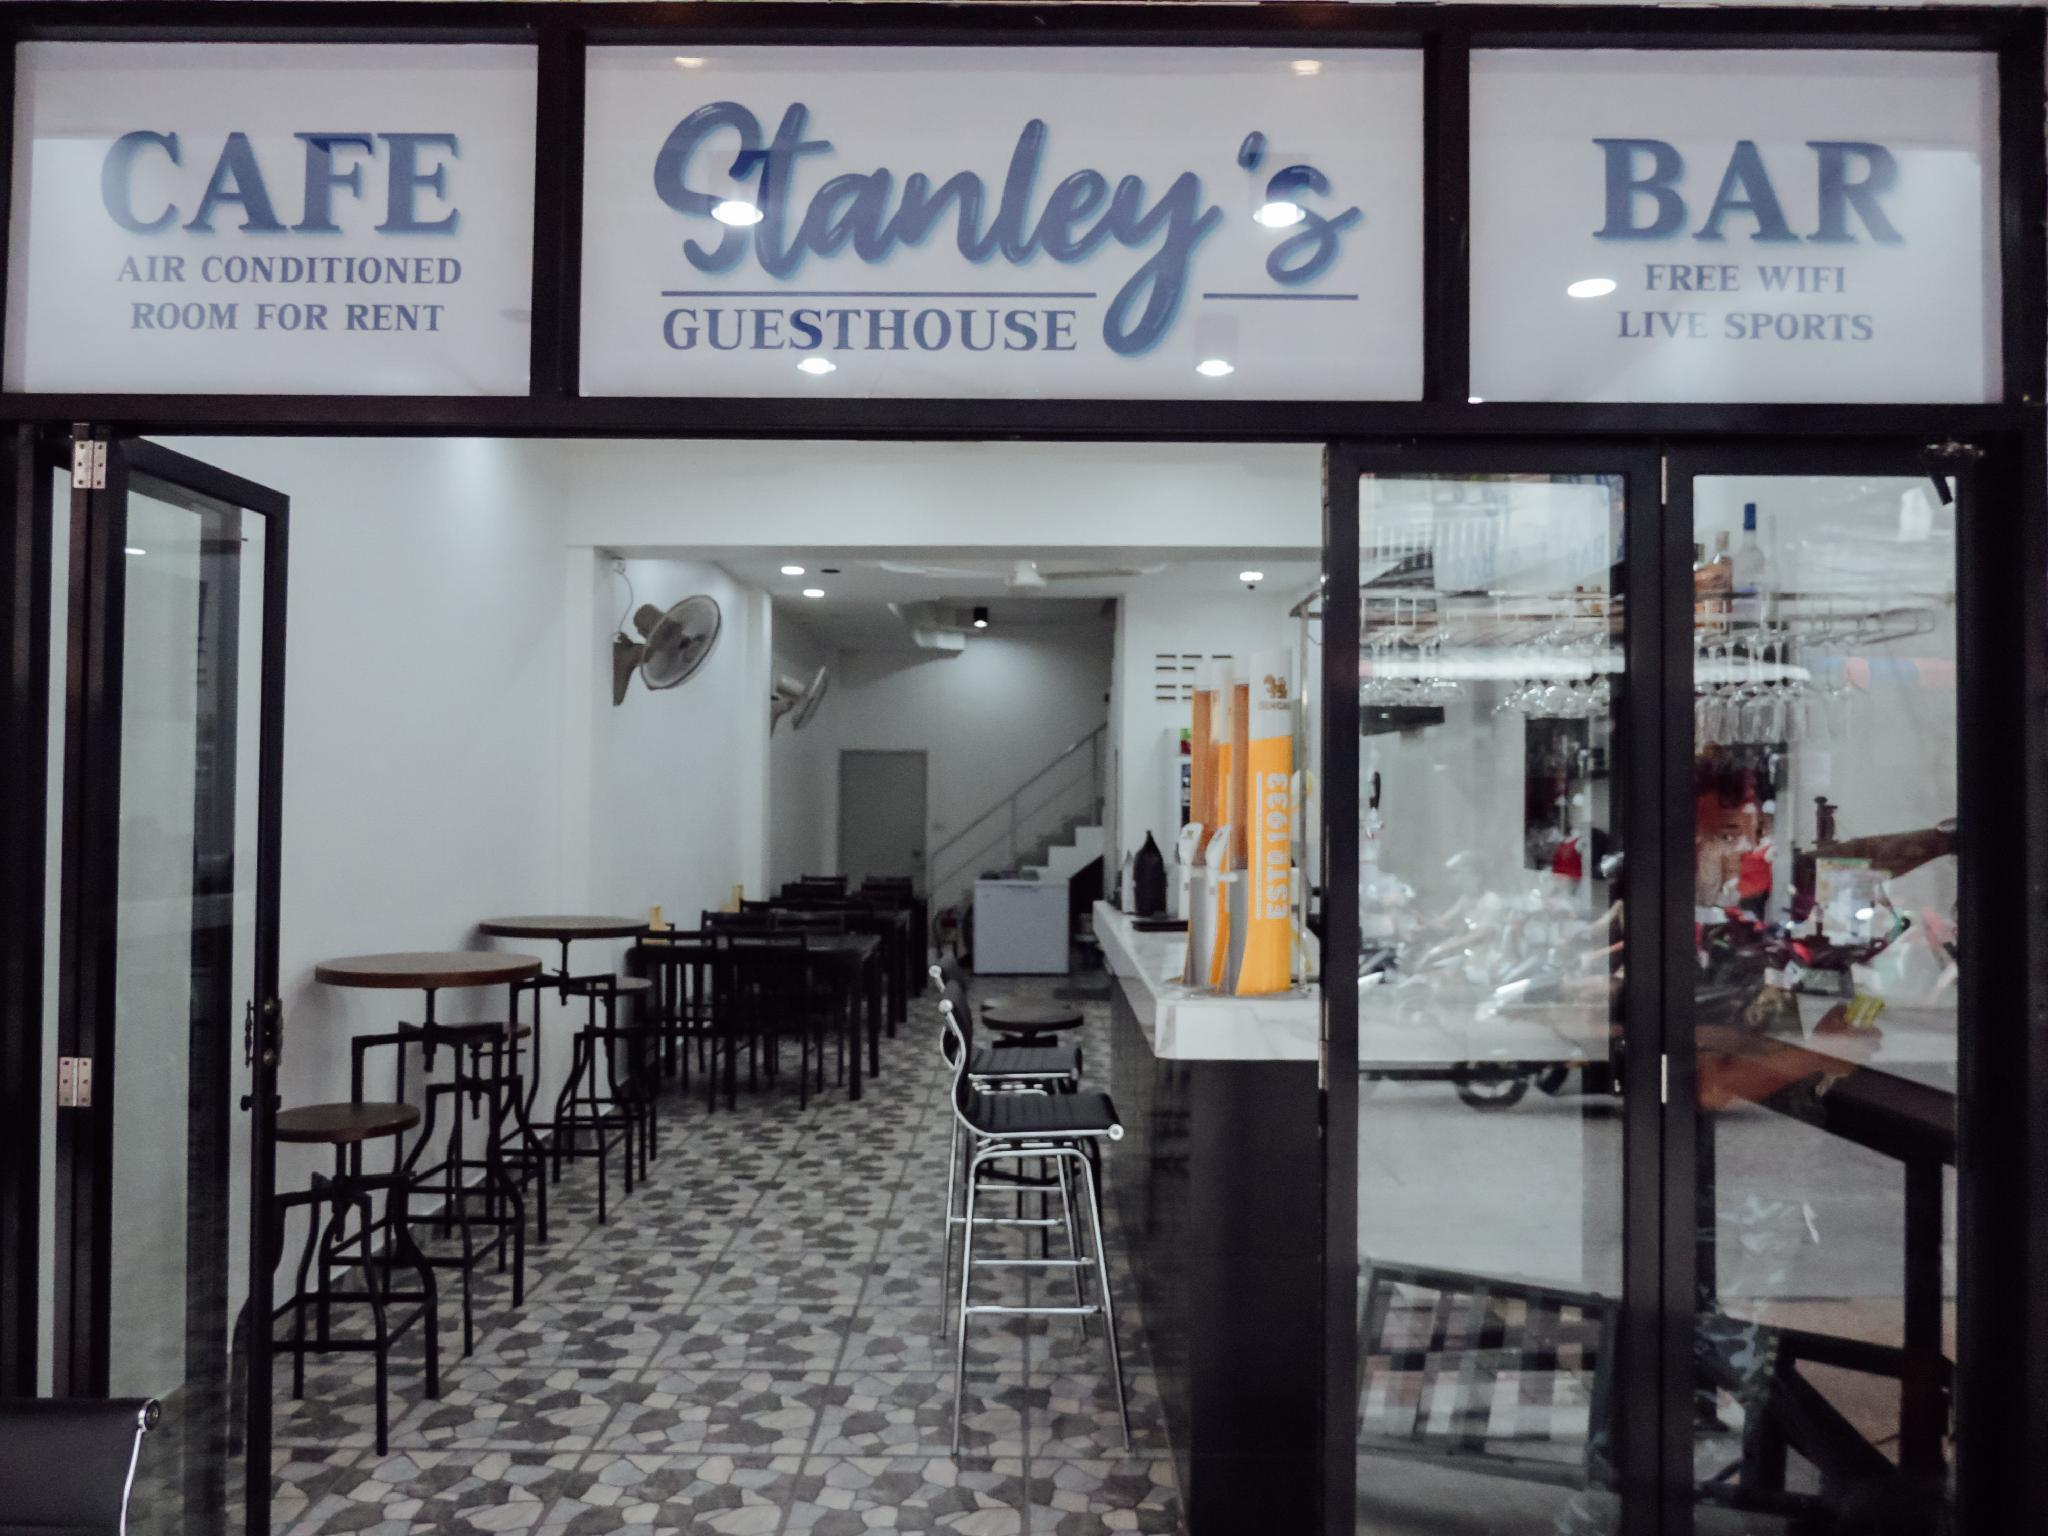 Stanley's Guesthouse